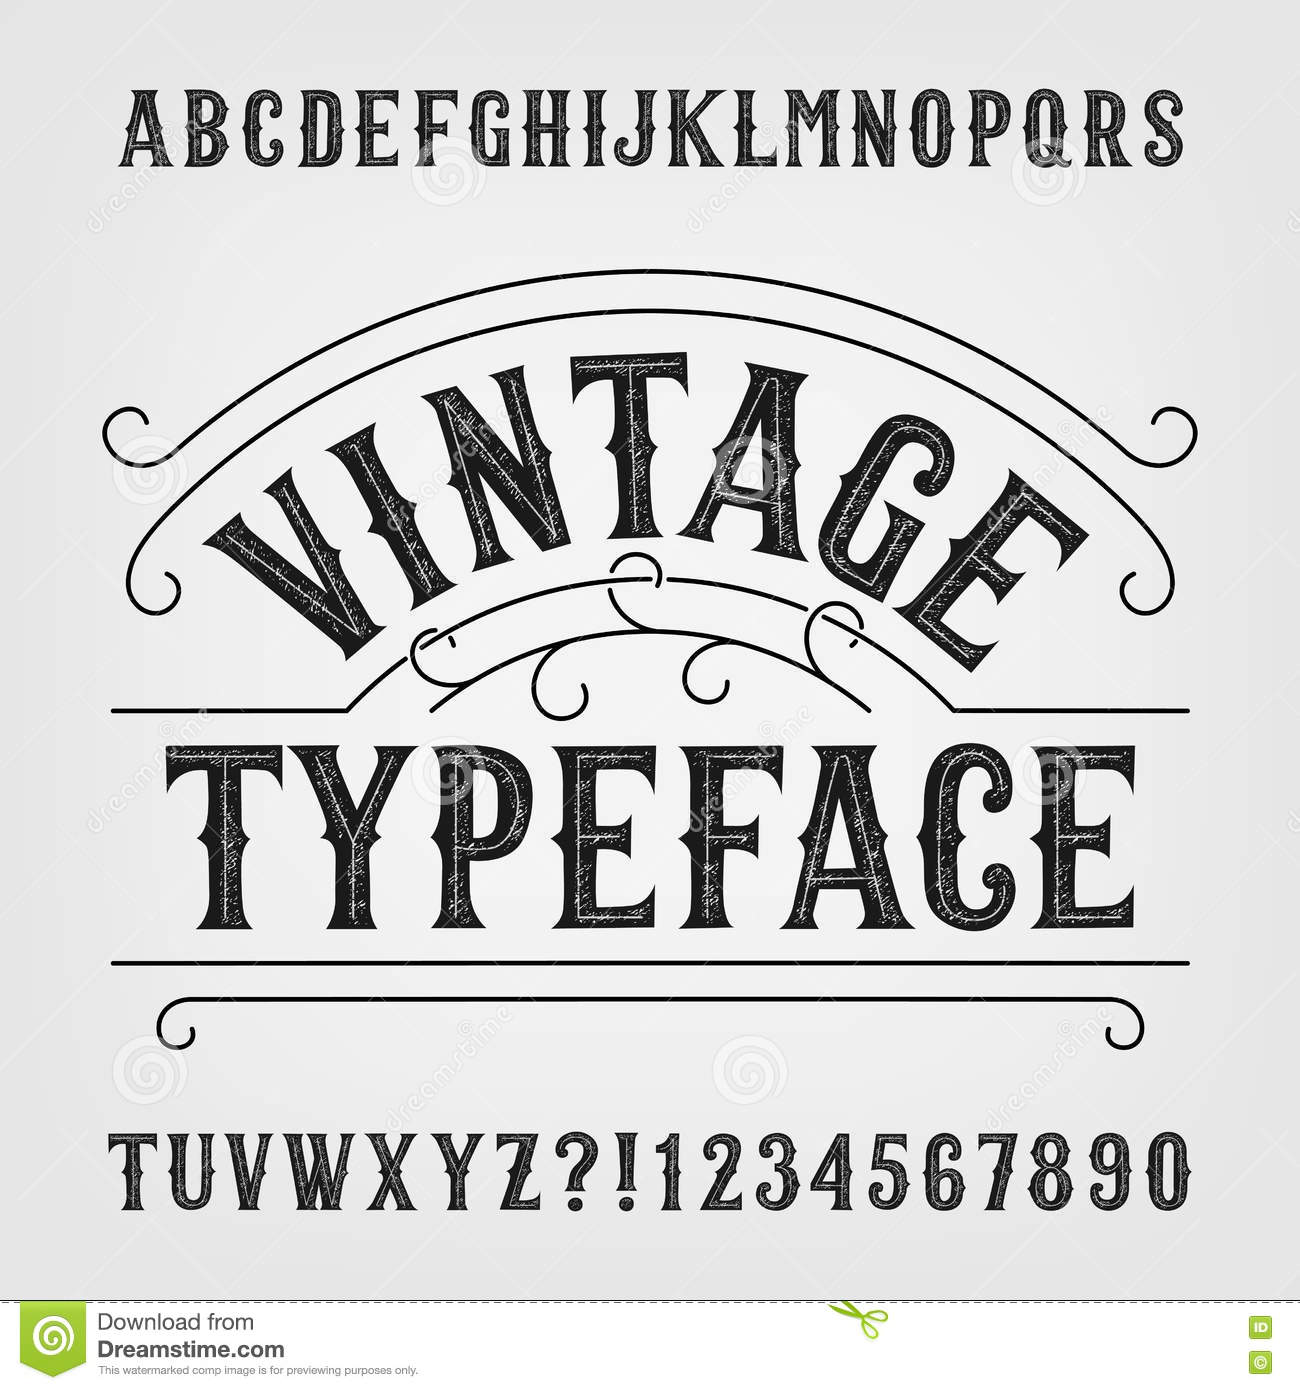 Graffiti Printables together with 51880 Free Vector Of The Day 196 Happy Birthday Type additionally Aegyptus Regular likewise Cute Bubble Letters Alphabet A Z also Times New Roman Regular. on cool letter e